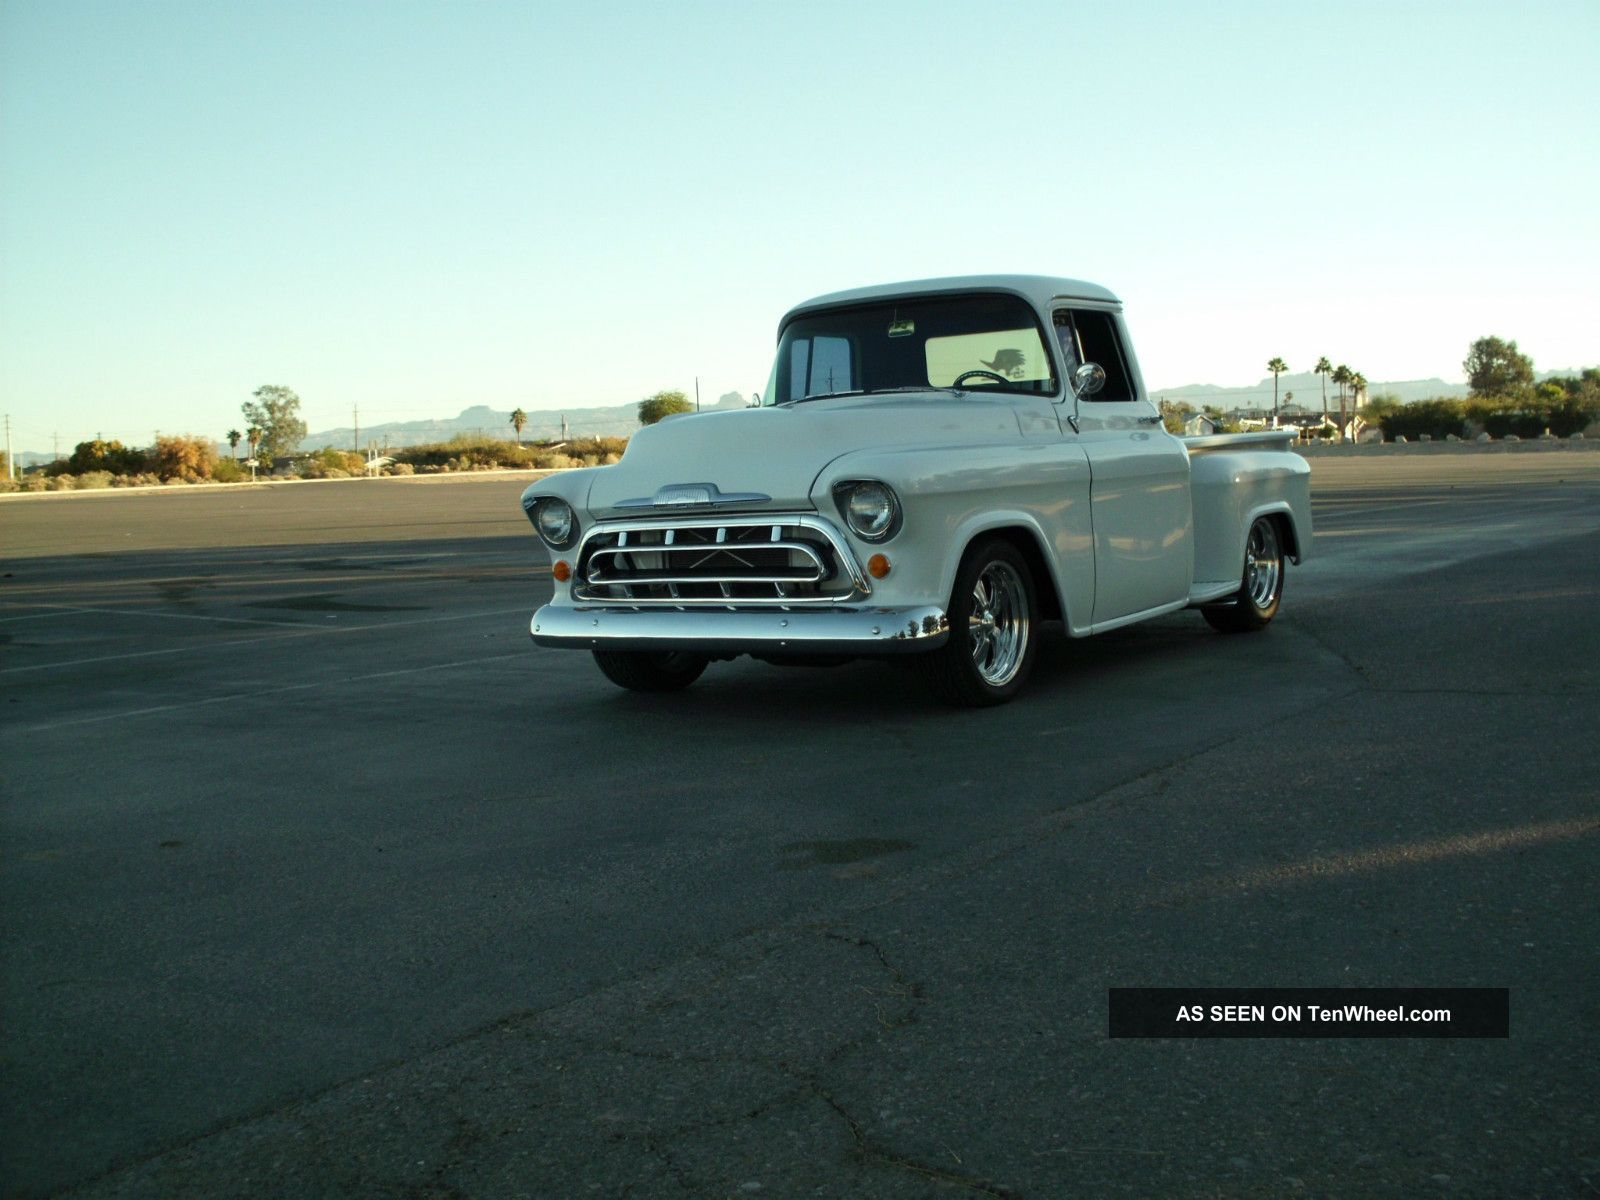 1957 chevy truck 1957 chevy chevrolet truck pickup 55 56 57 1955 1956 other photo